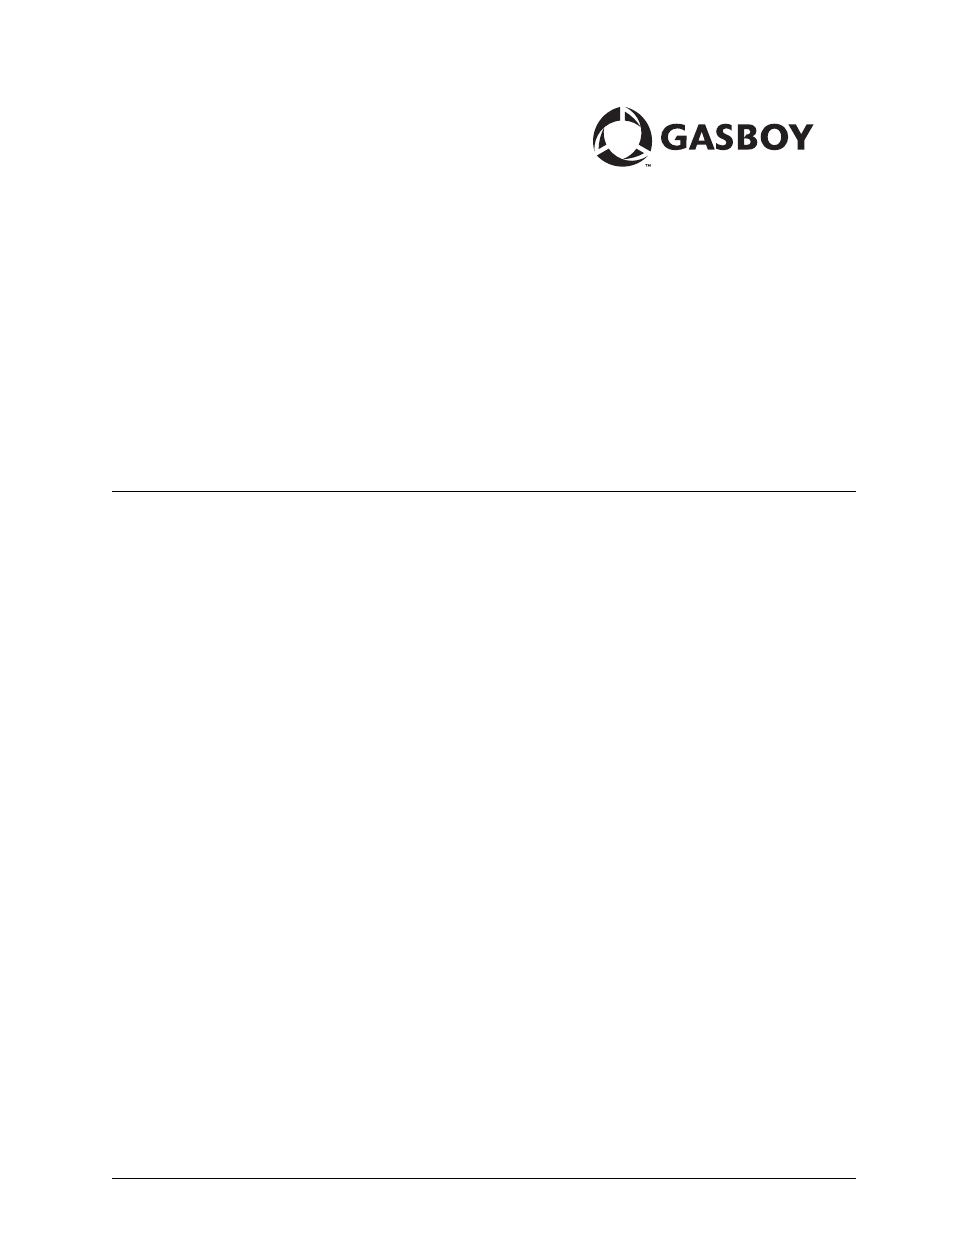 ... box manual diestetic com Array - gasboy cfn series tokheim pump pc  interface user manual 18 pages rh manualsdir ...